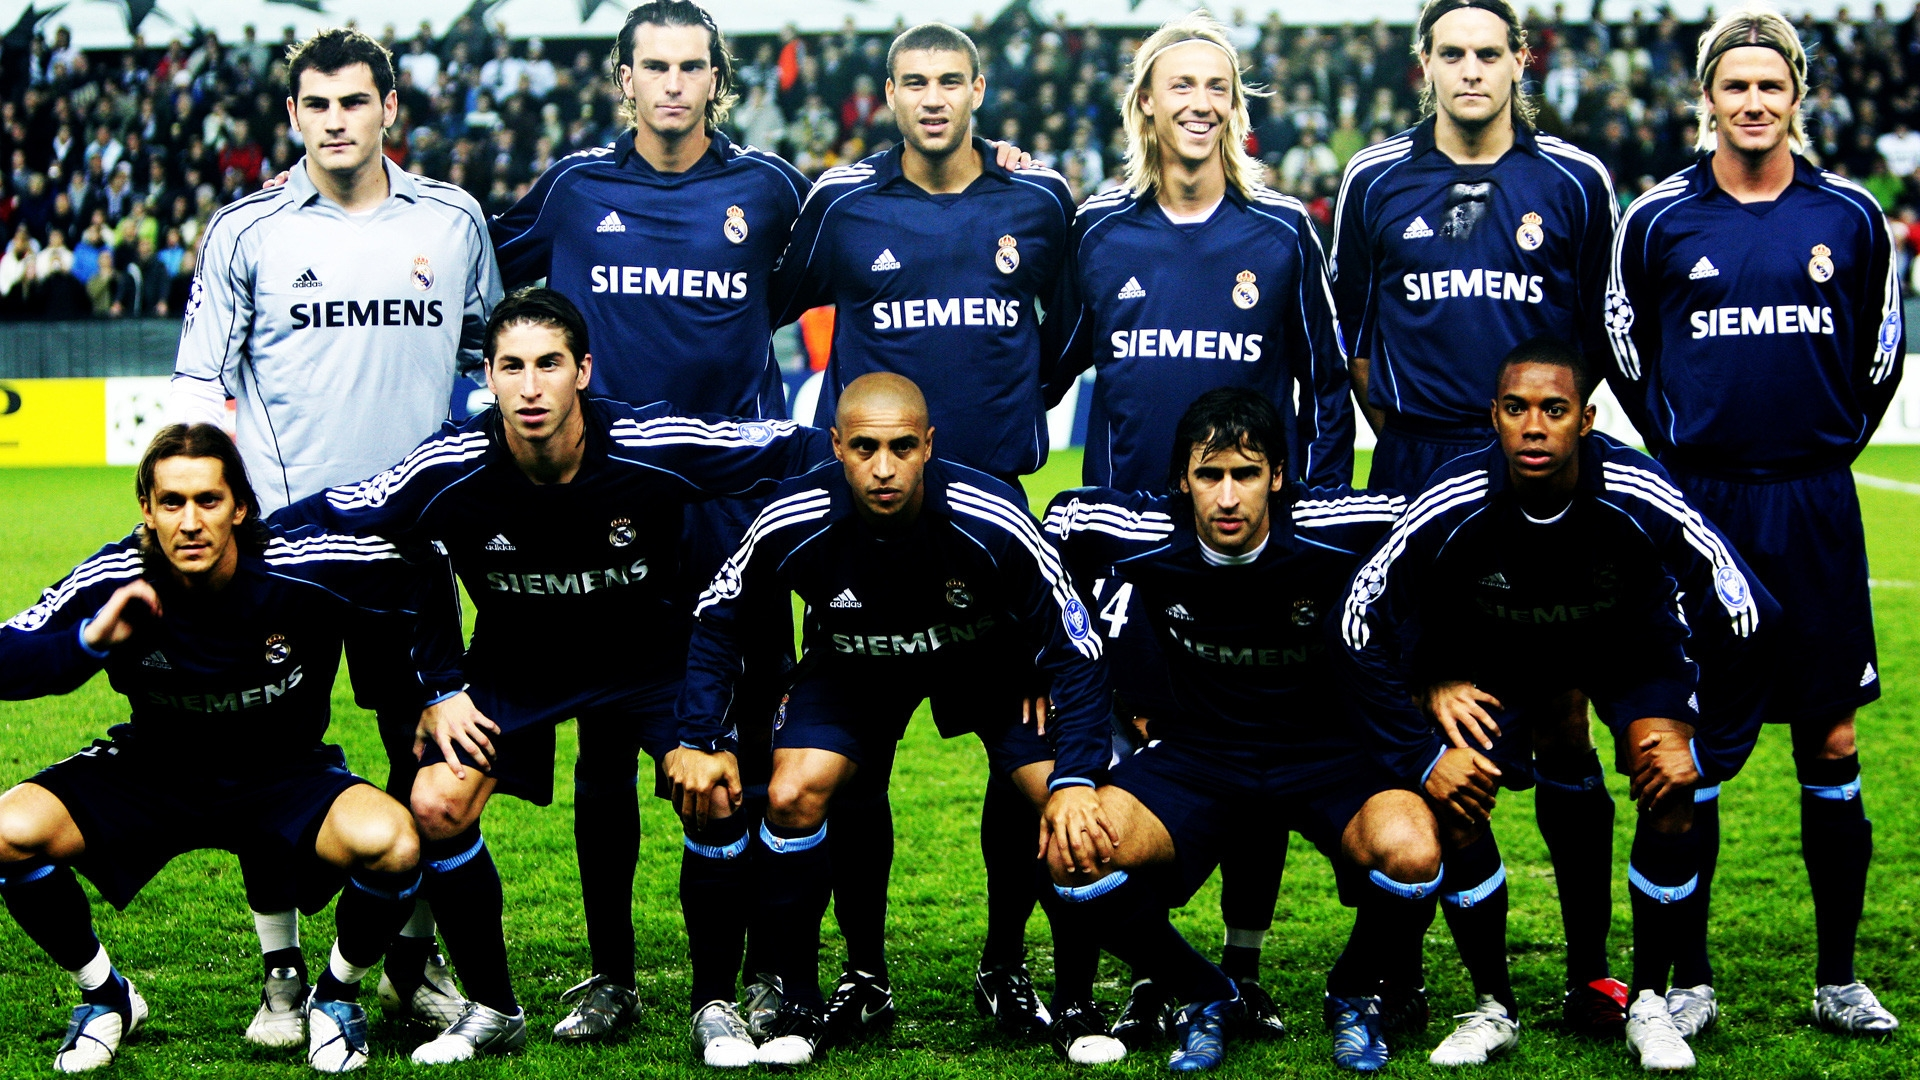 Real Madrid Team for 1920 x 1080 HDTV 1080p resolution